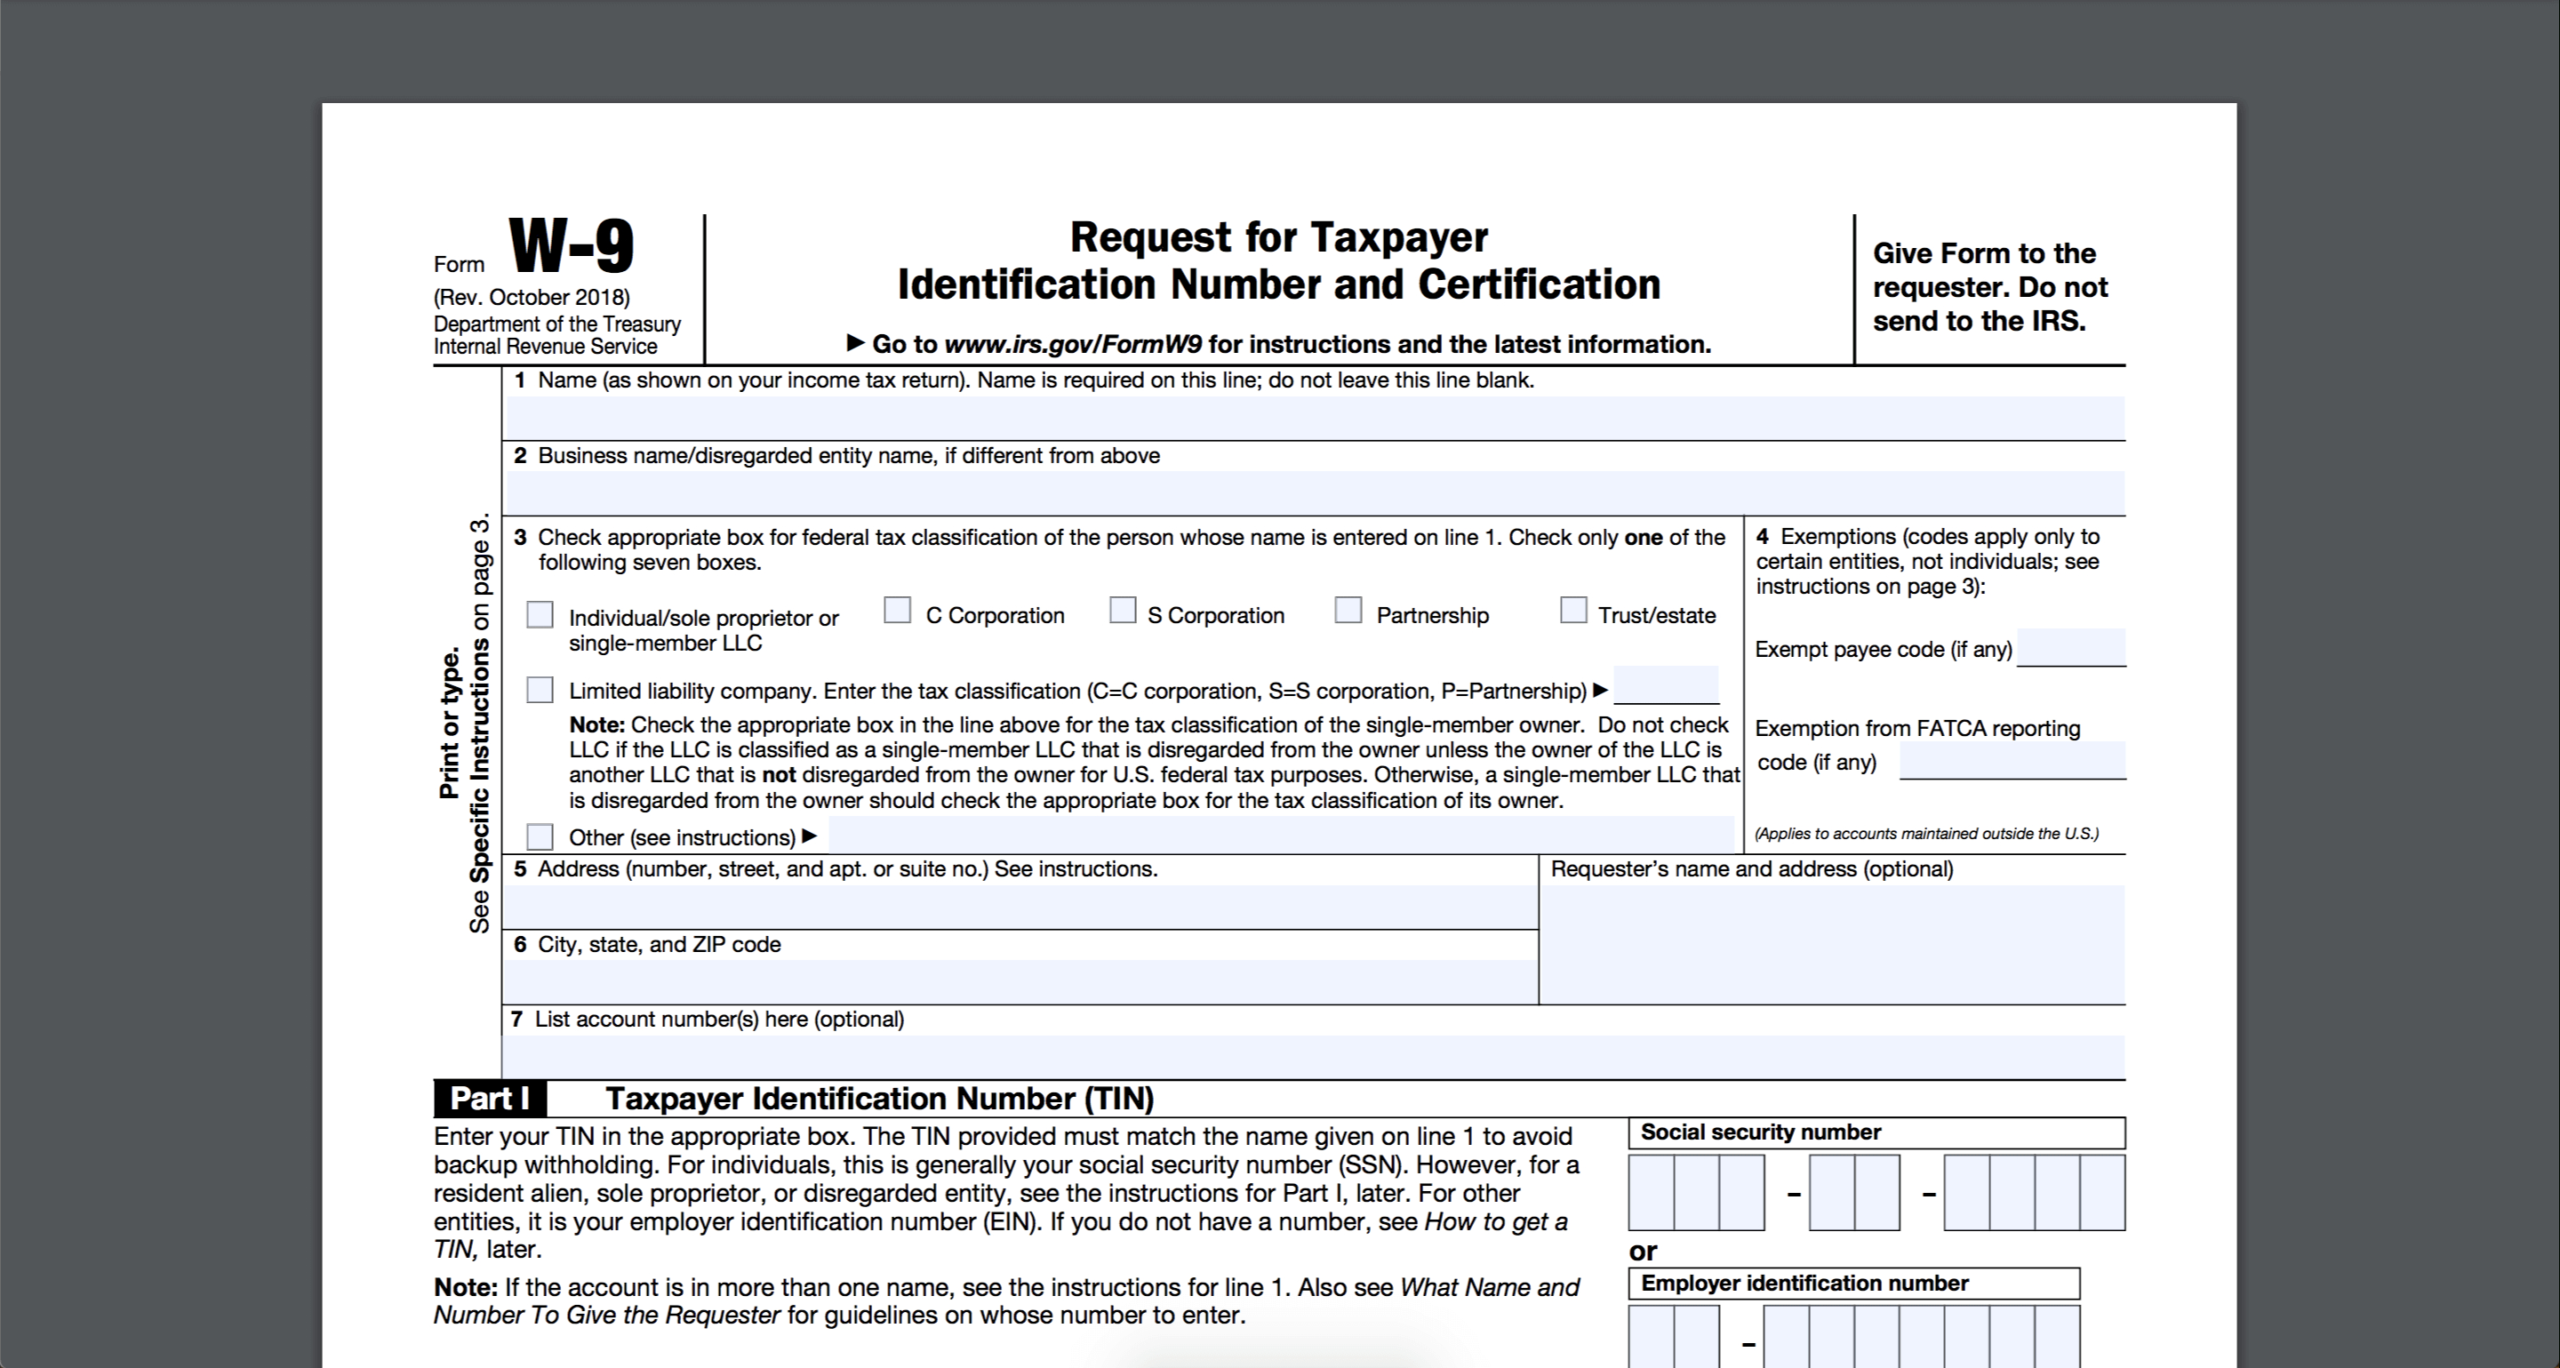 How To Fill Out And Sign Your W-9 Form Online within Blank W-9 Form